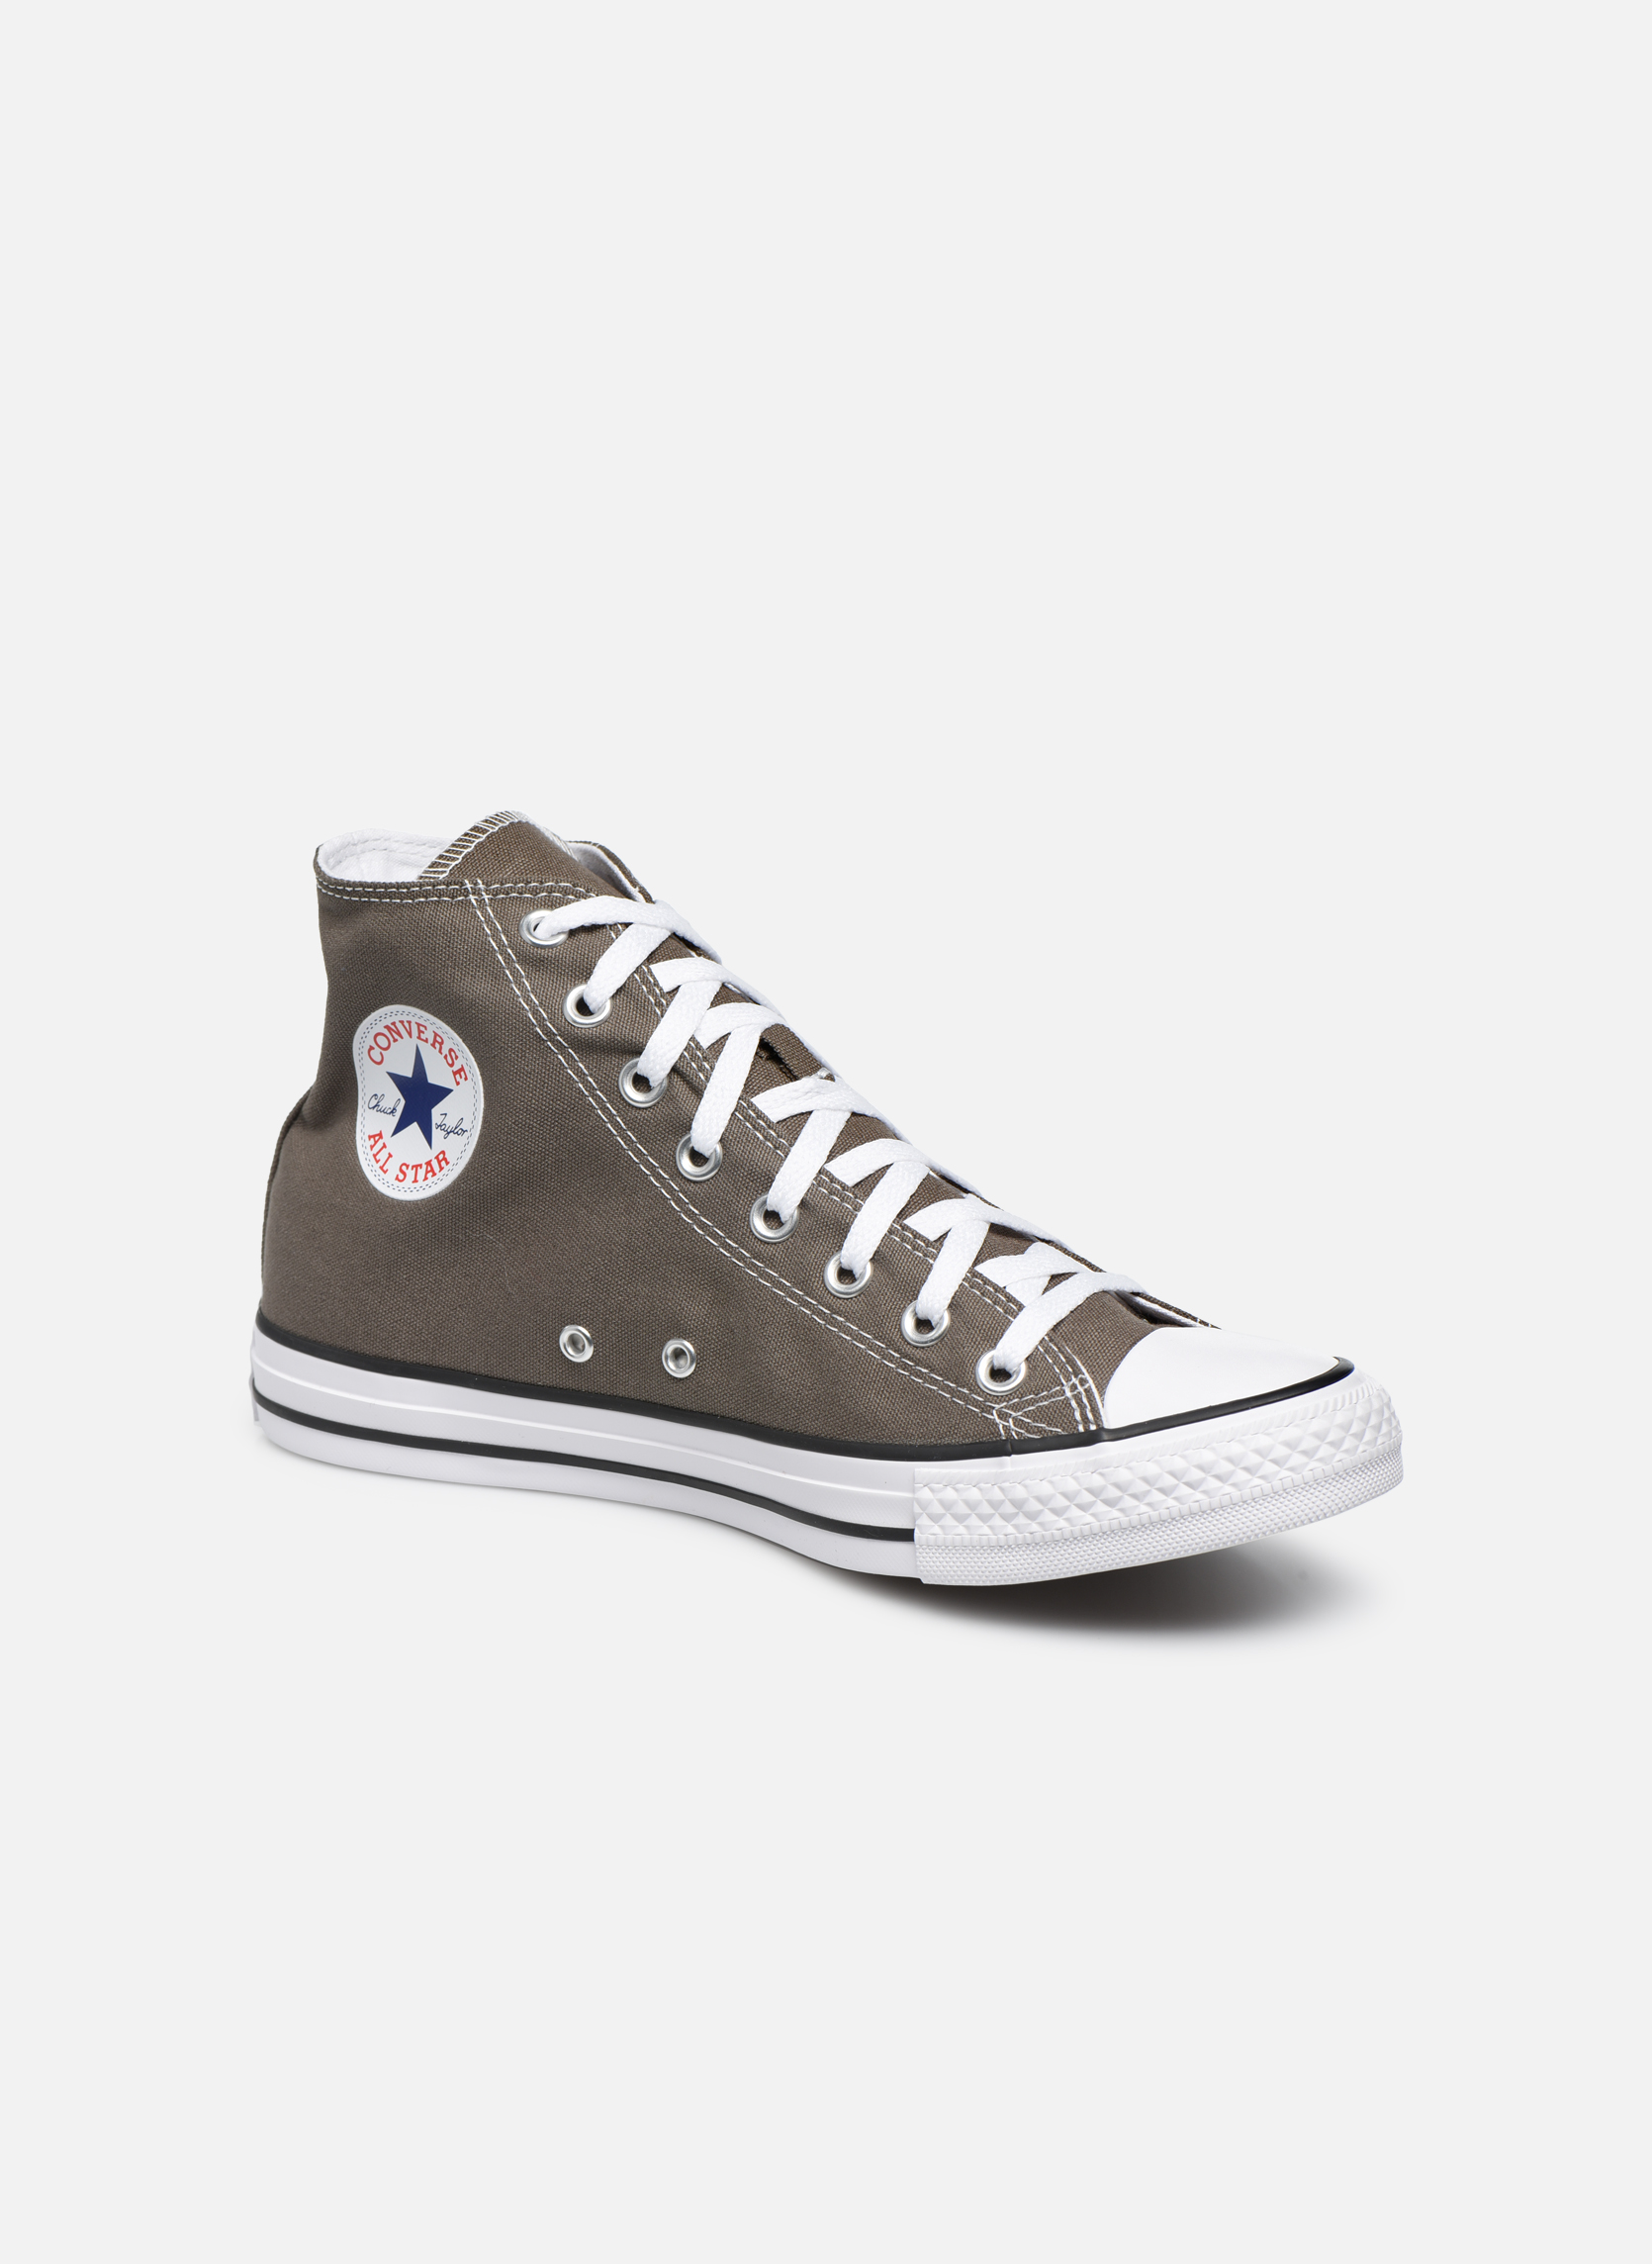 Sneakers Converse Chuck Taylor All Star Hi M Grijs detail